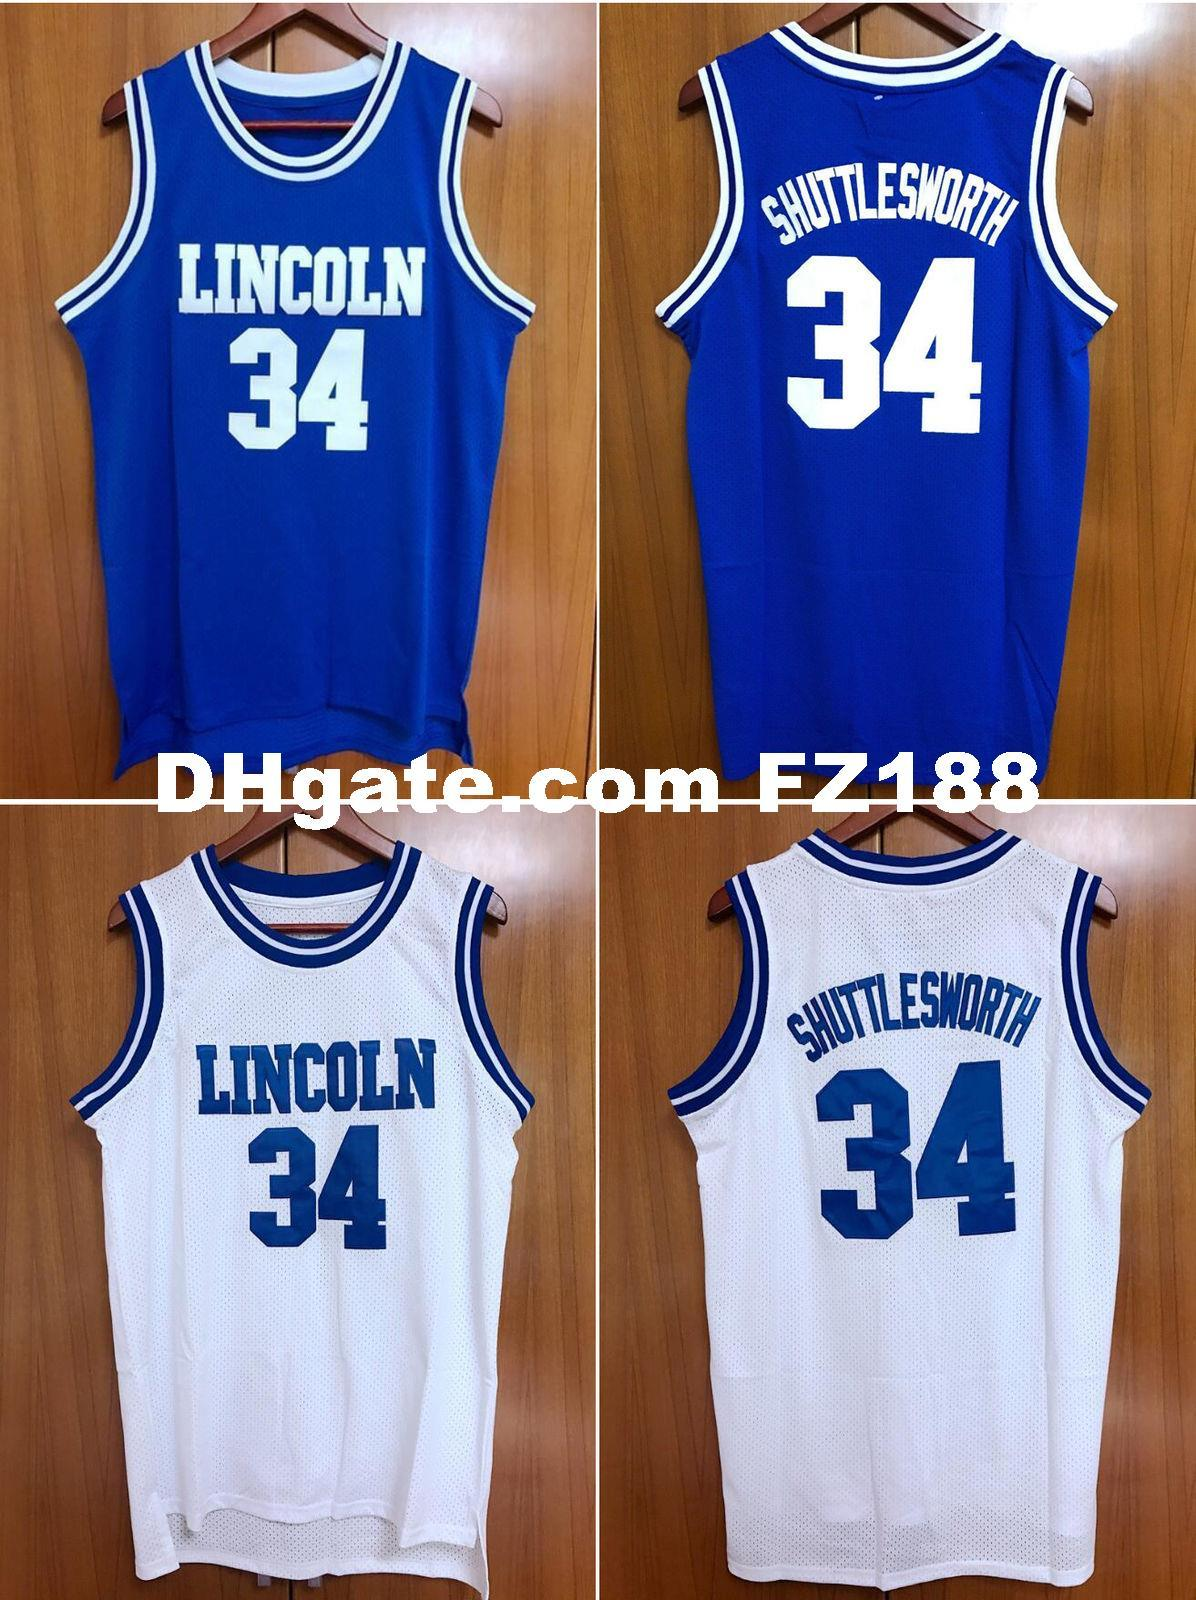 e7817eb86fca 2019 Jesus Shuttlesworth  34 Lincoln He Got Game Blue White Jersey XS 6XL  From Diyjerseys